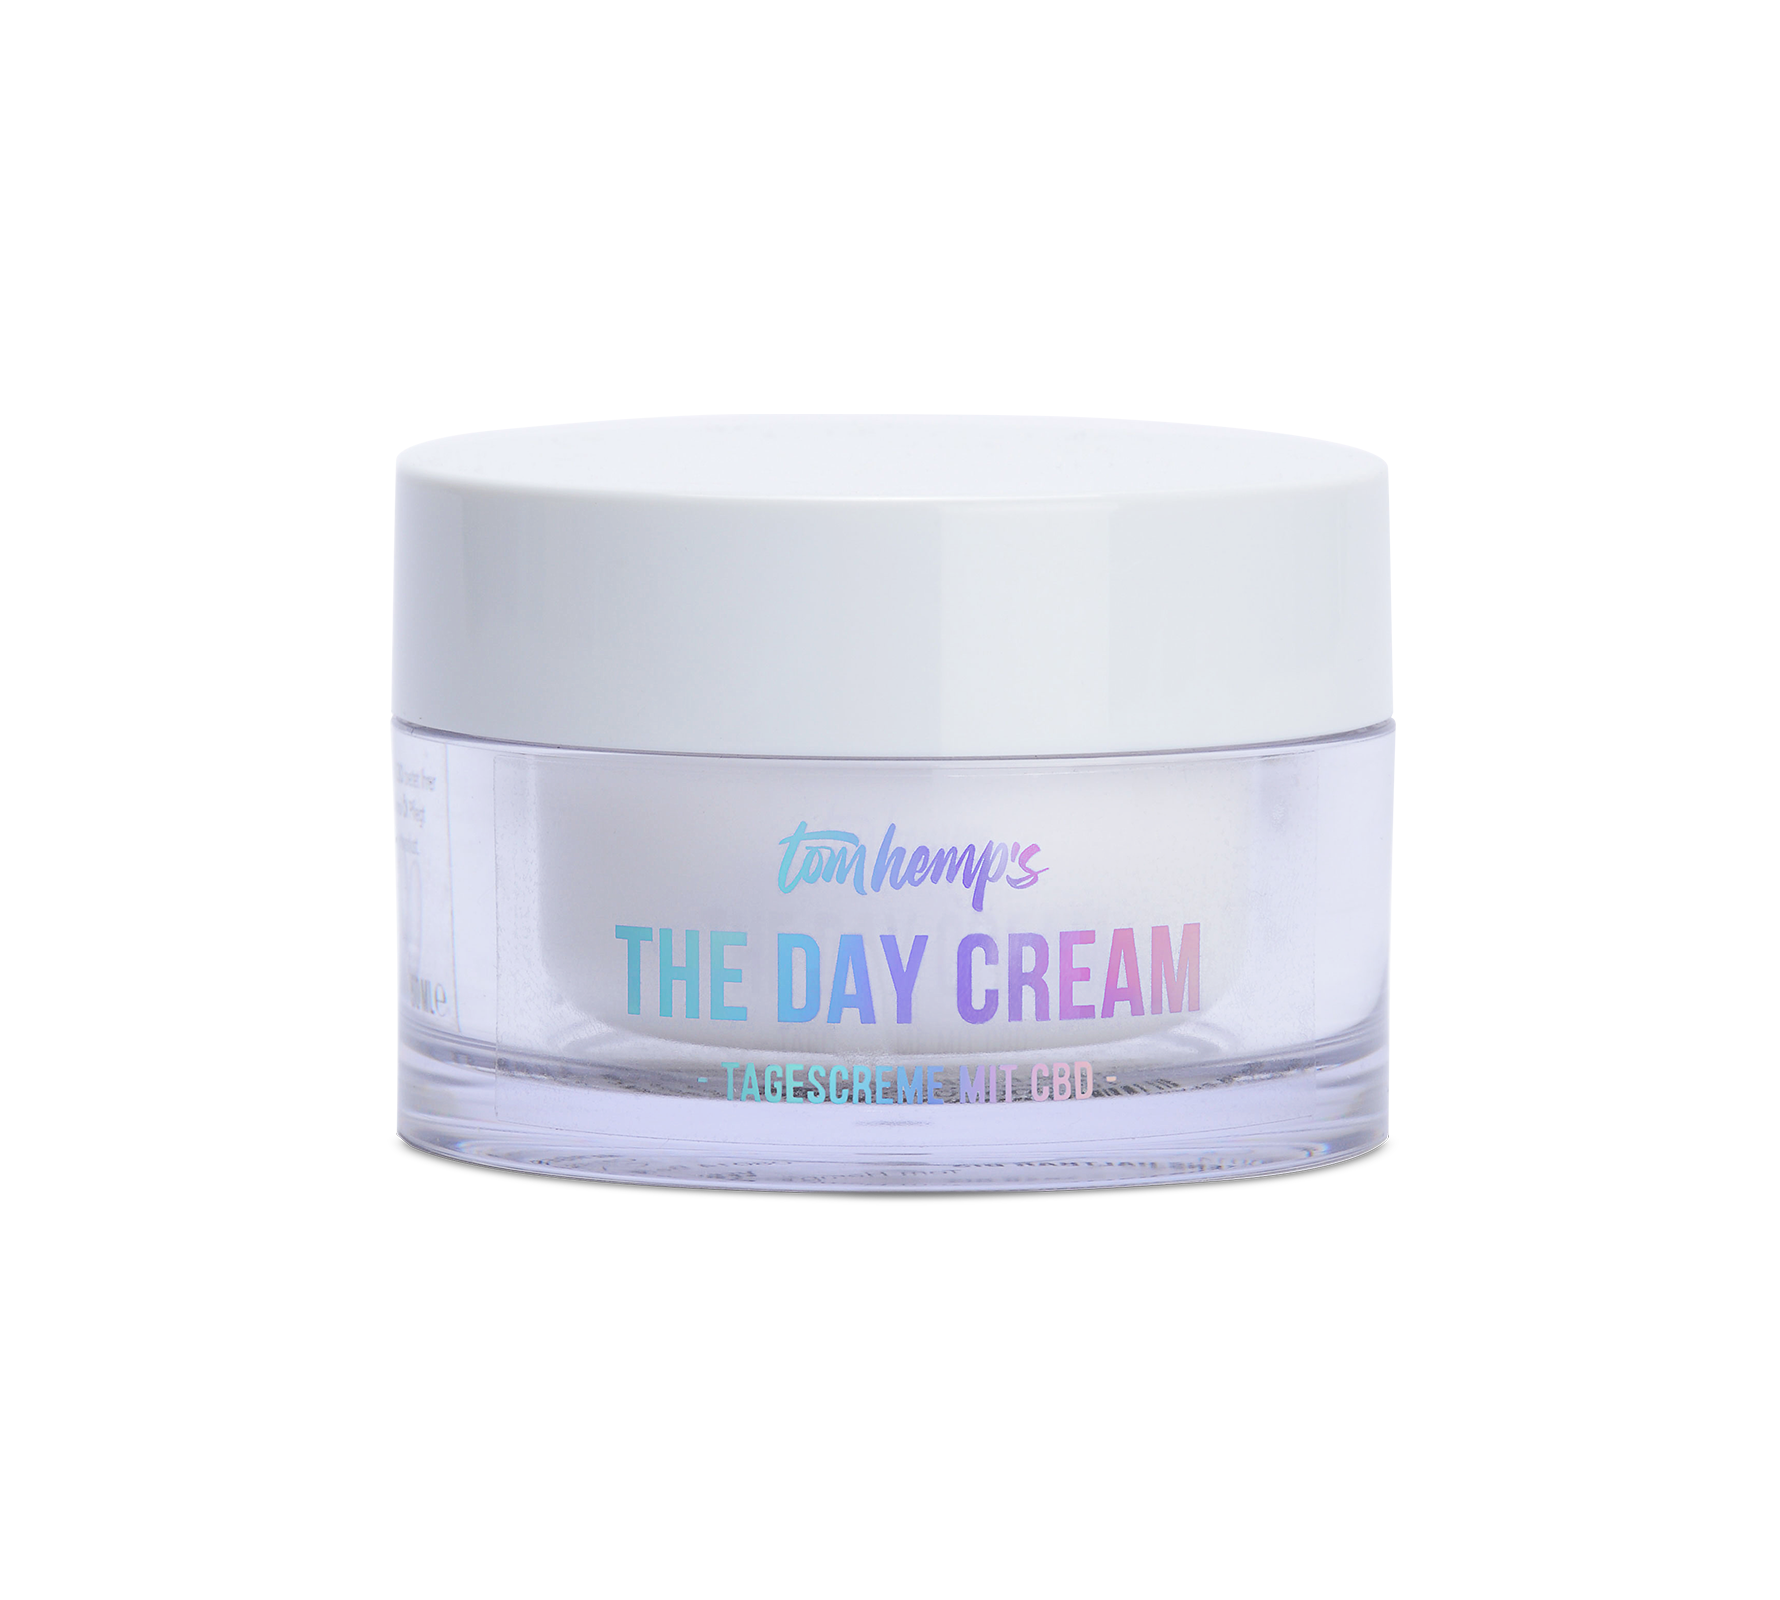 The Day Cream